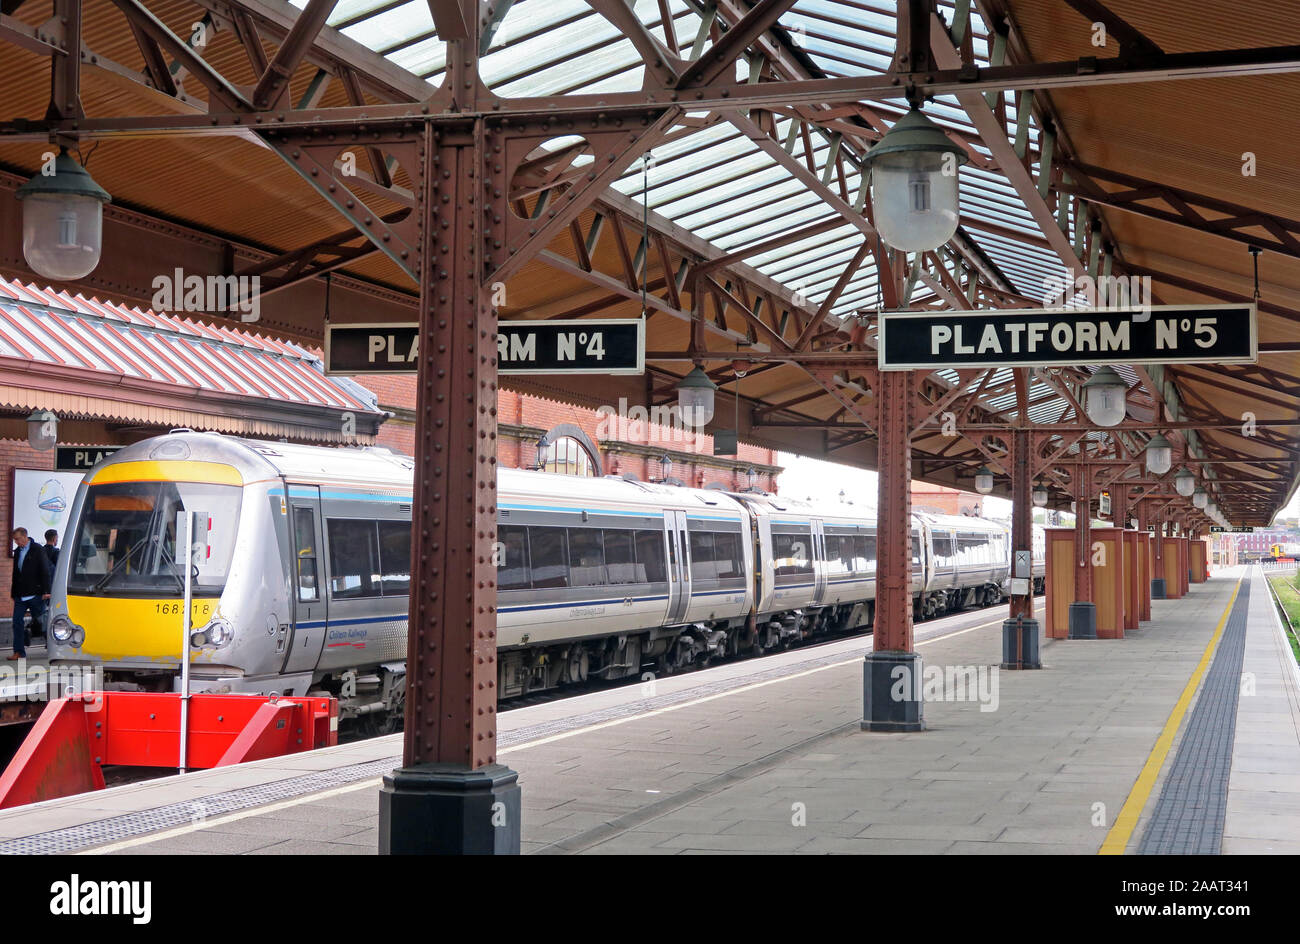 HotpixUk,@HotpixUK,GoTonySmith,UK,England,English,B4,platform,heritage,historic,Railway station,Chiltern Trains TOC,TOC,Chiltern,Chiltern Railways is a British train operating company owned by,Oxfordshire and Warwickshire,as well as long-distance services to the West Midlands,Stratford-upon-Avon and Oxford,with some peak-hour services extended to Kidderminster. Chiltern Railways also,and on the Princes Risborough to Aylesbury and Oxford